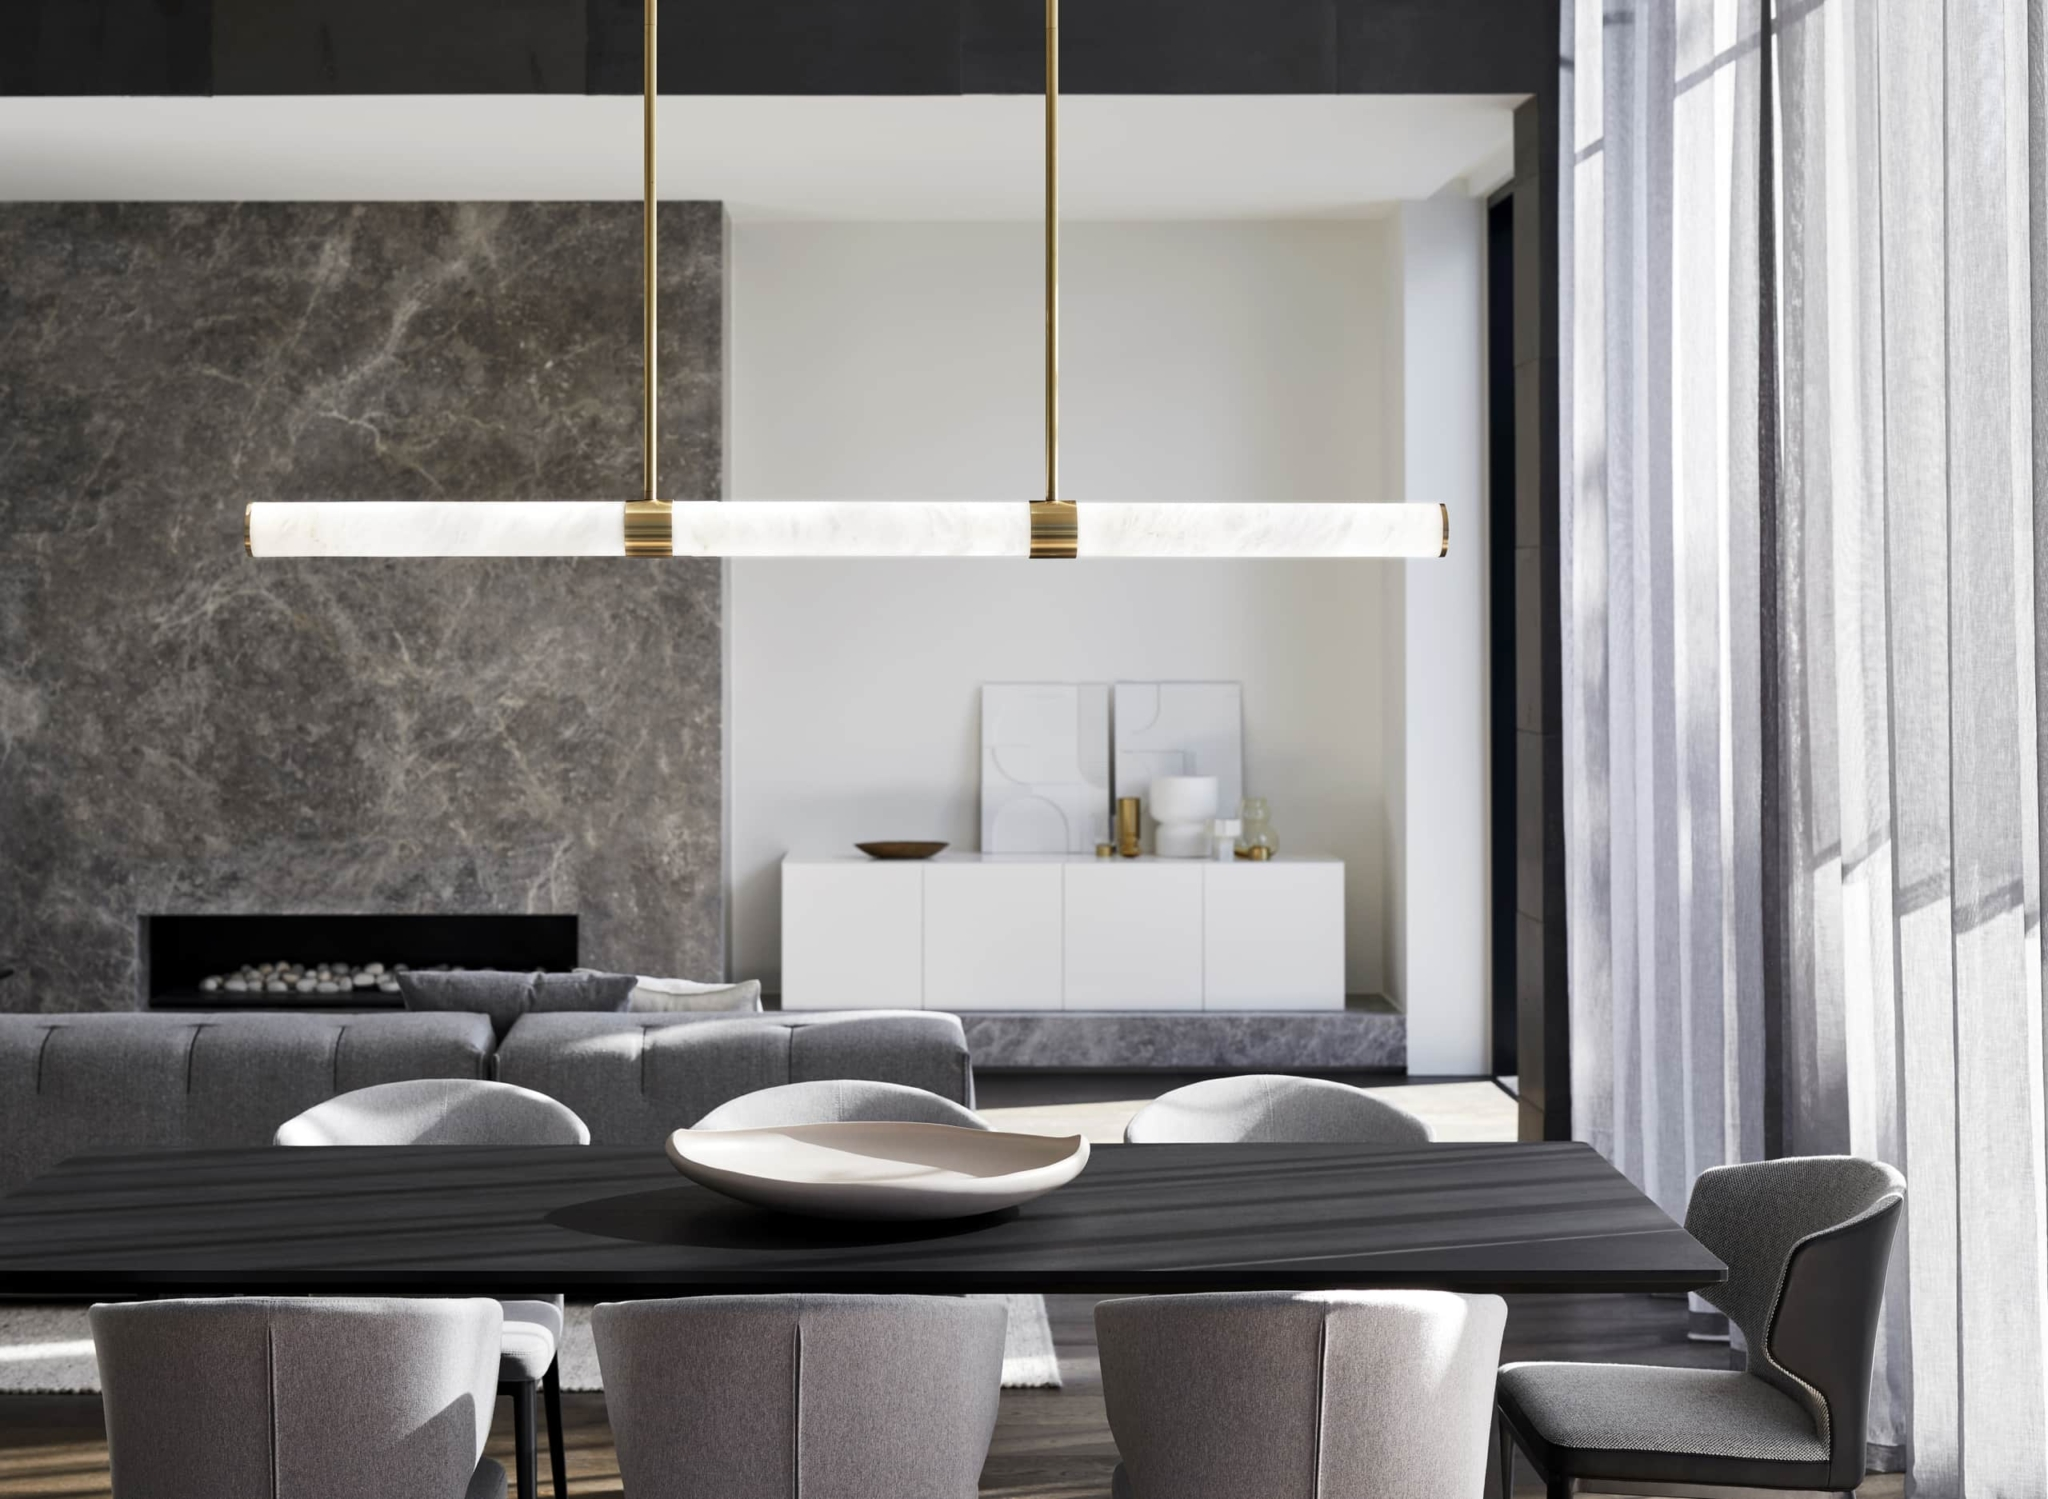 Dining Room Pendant Light Ideas For All Table Shapes Tlc Interiors